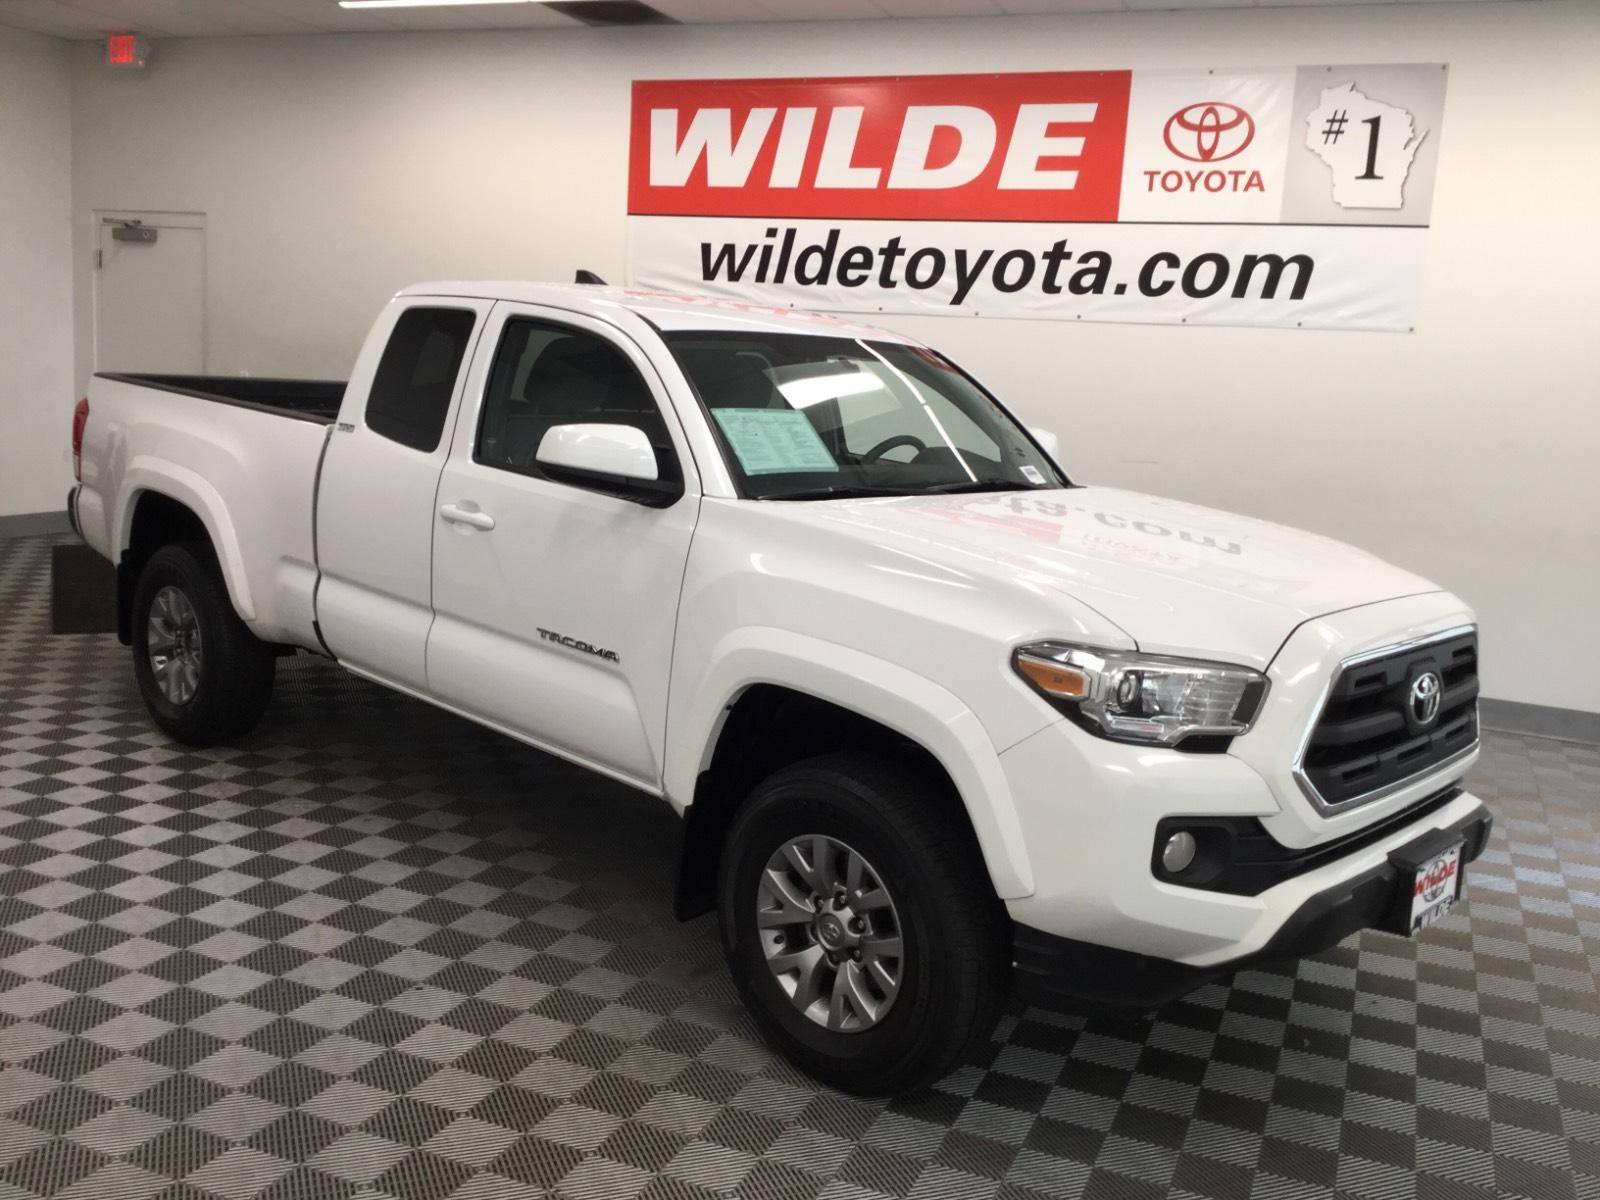 Pre-Owned 2017 Toyota Tacoma SR5 Access Cab 6' Bed I4 4x4 AT